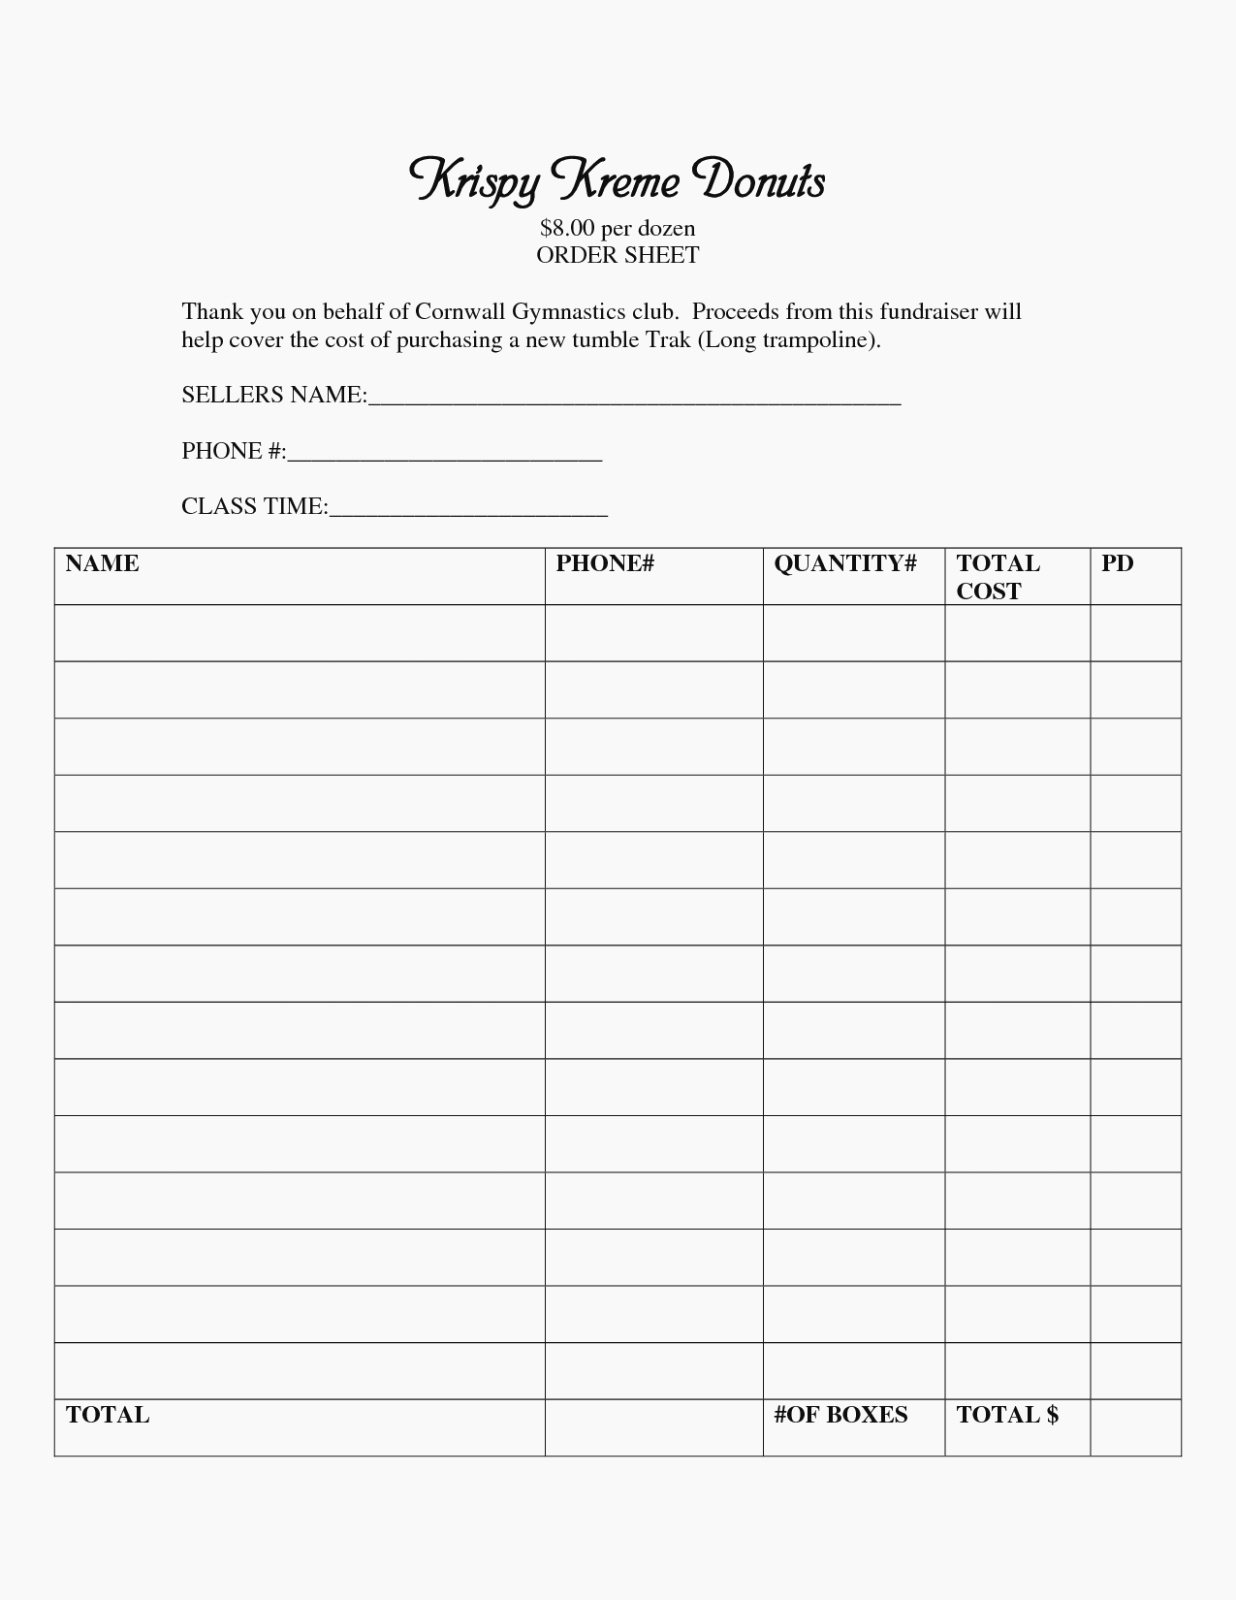 Blank Fundraiser order form Template New the Hidden Agenda